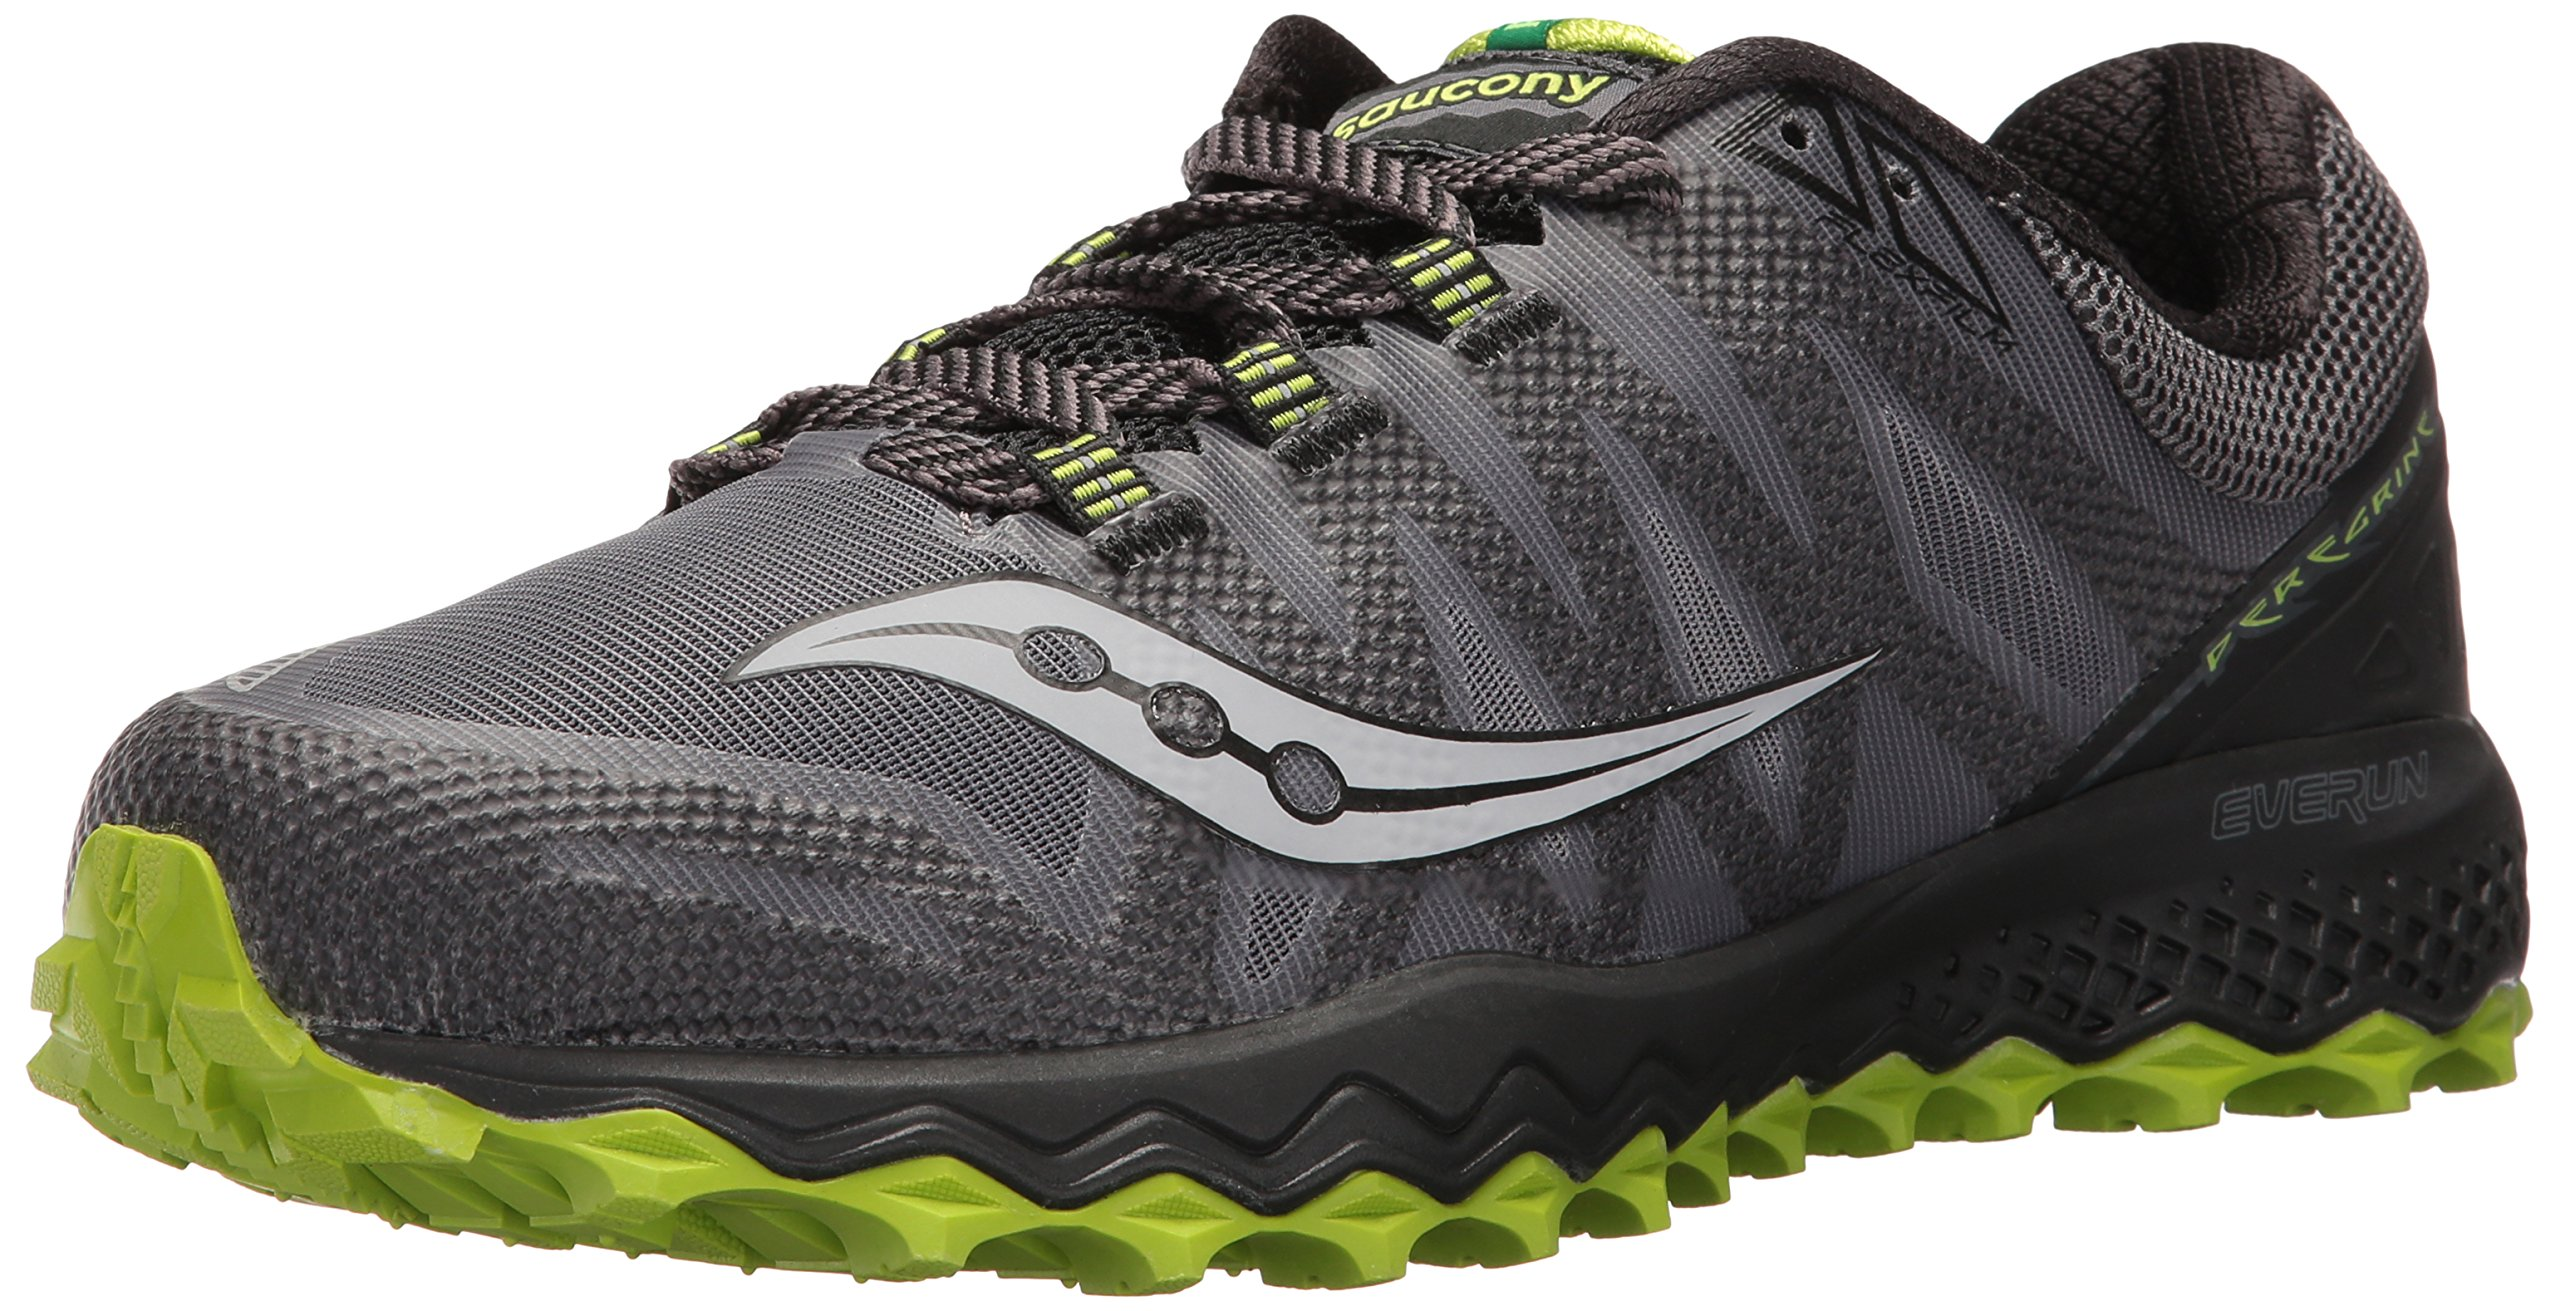 Saucony Men's Peregrine 7 Trail Runner, Grey/Black/Lime, 10.5 M US (S20359-2) by Saucony